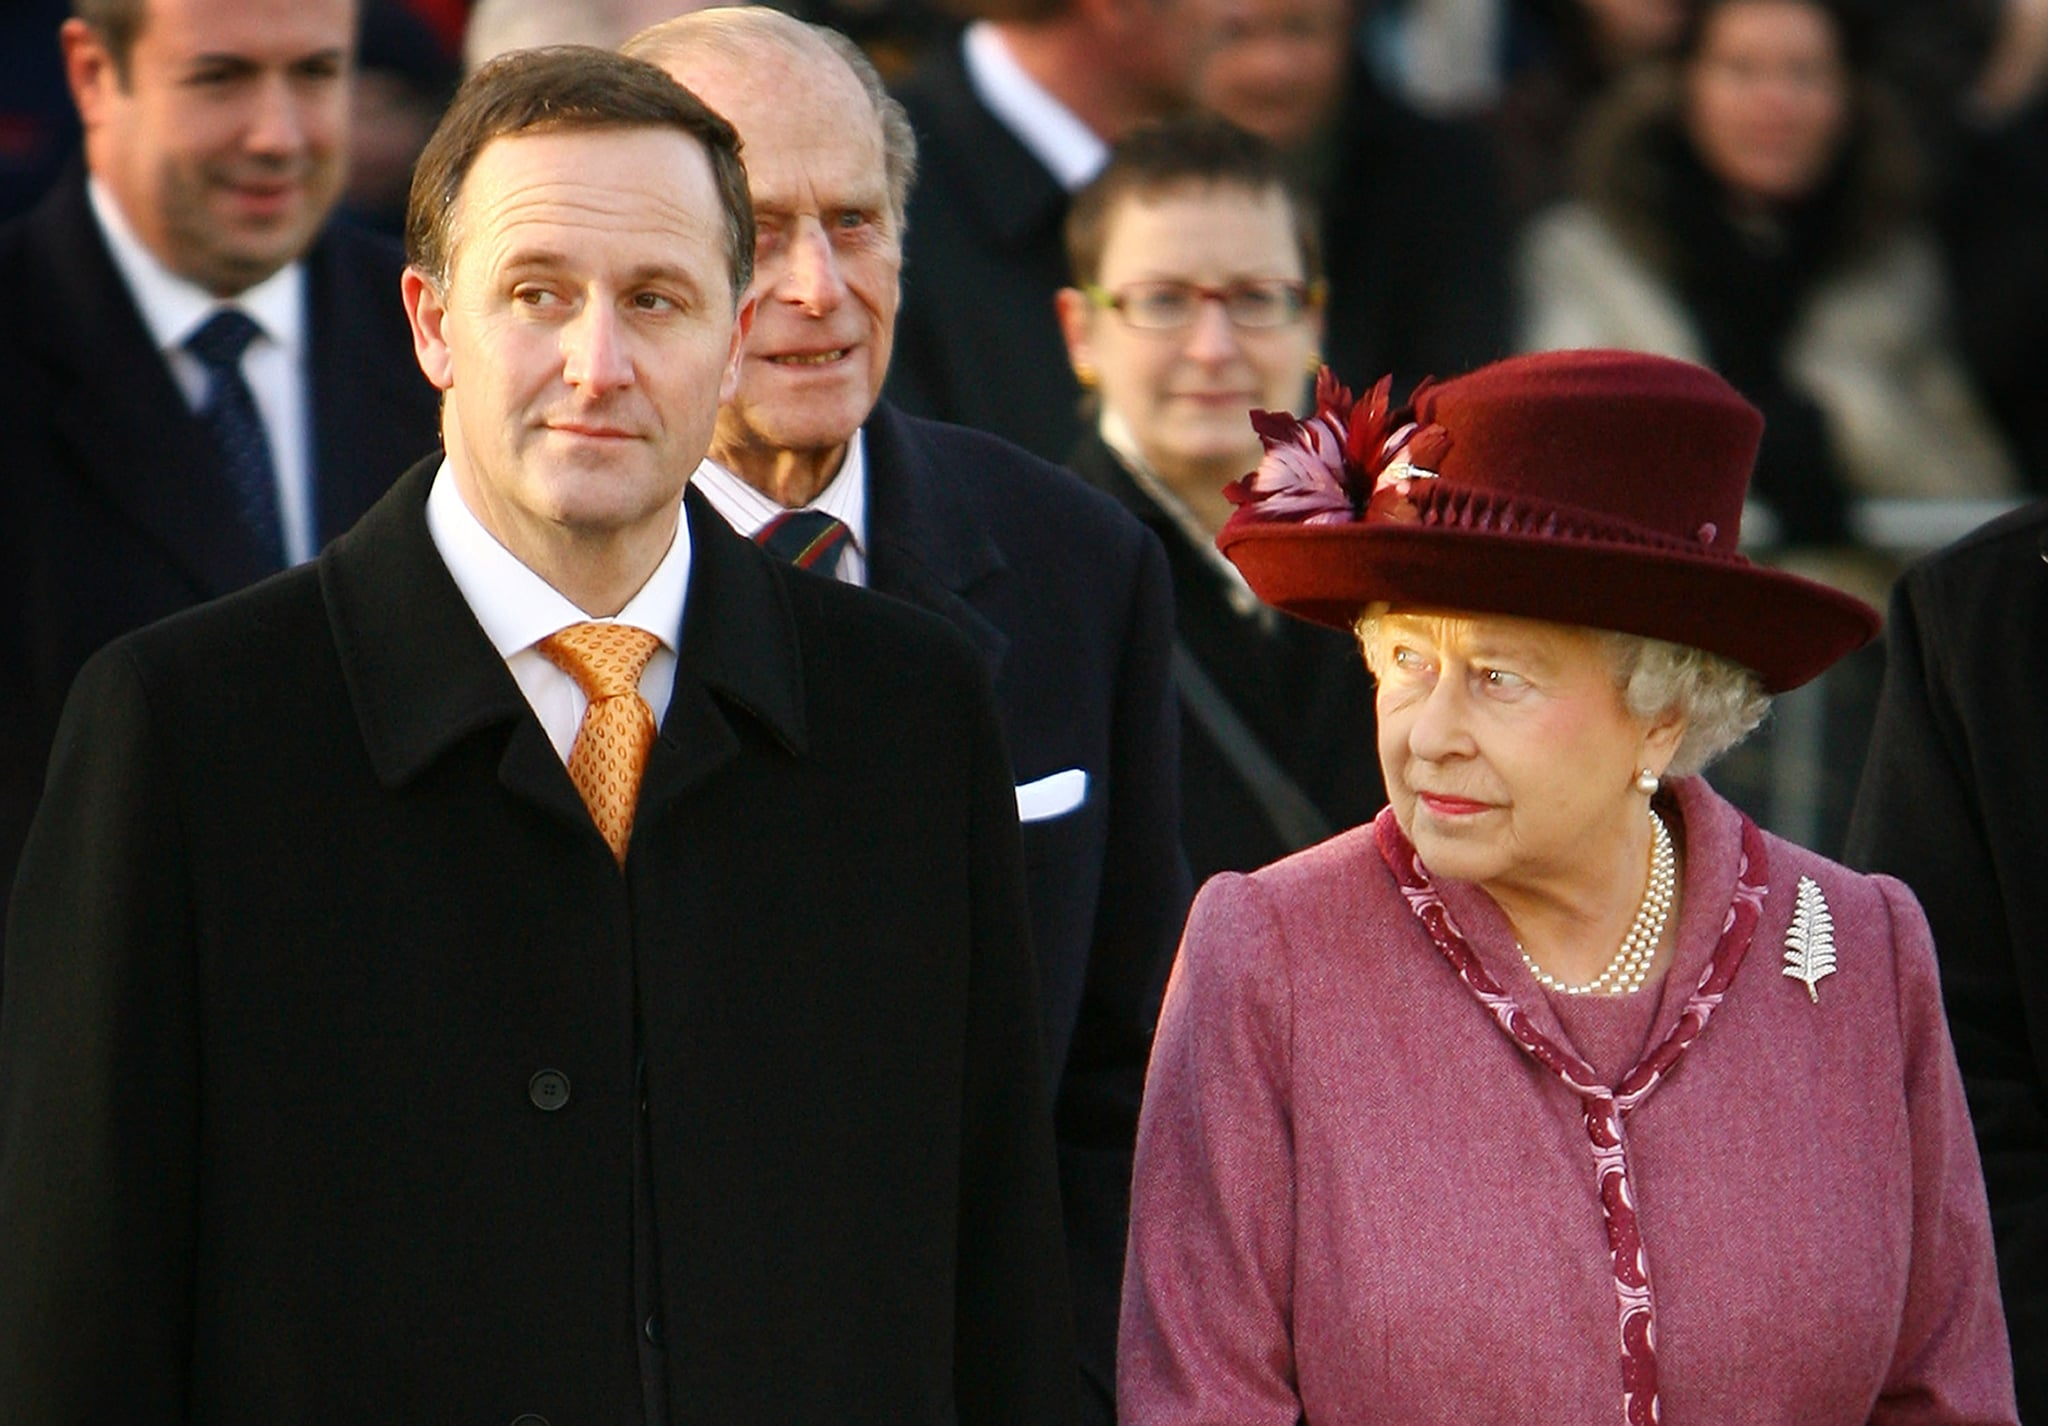 The Queen's New Zealand Pin